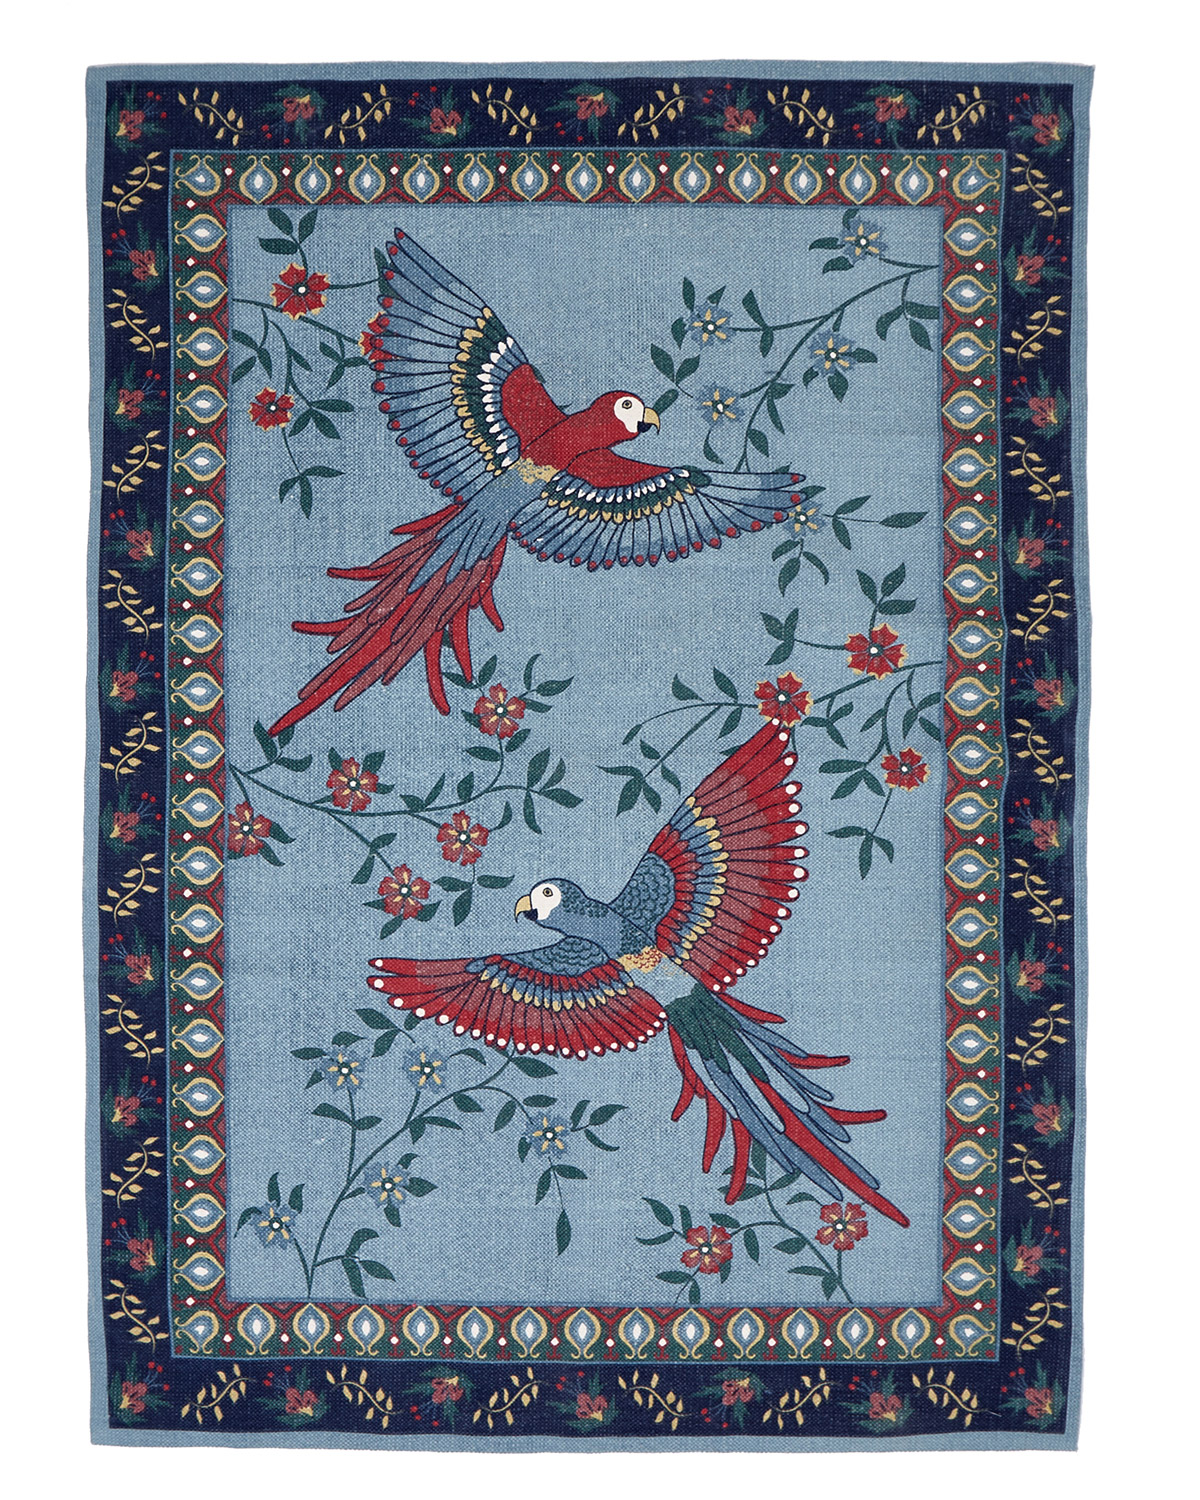 Blue Carolyn Donnelly Eclectic Birds Of